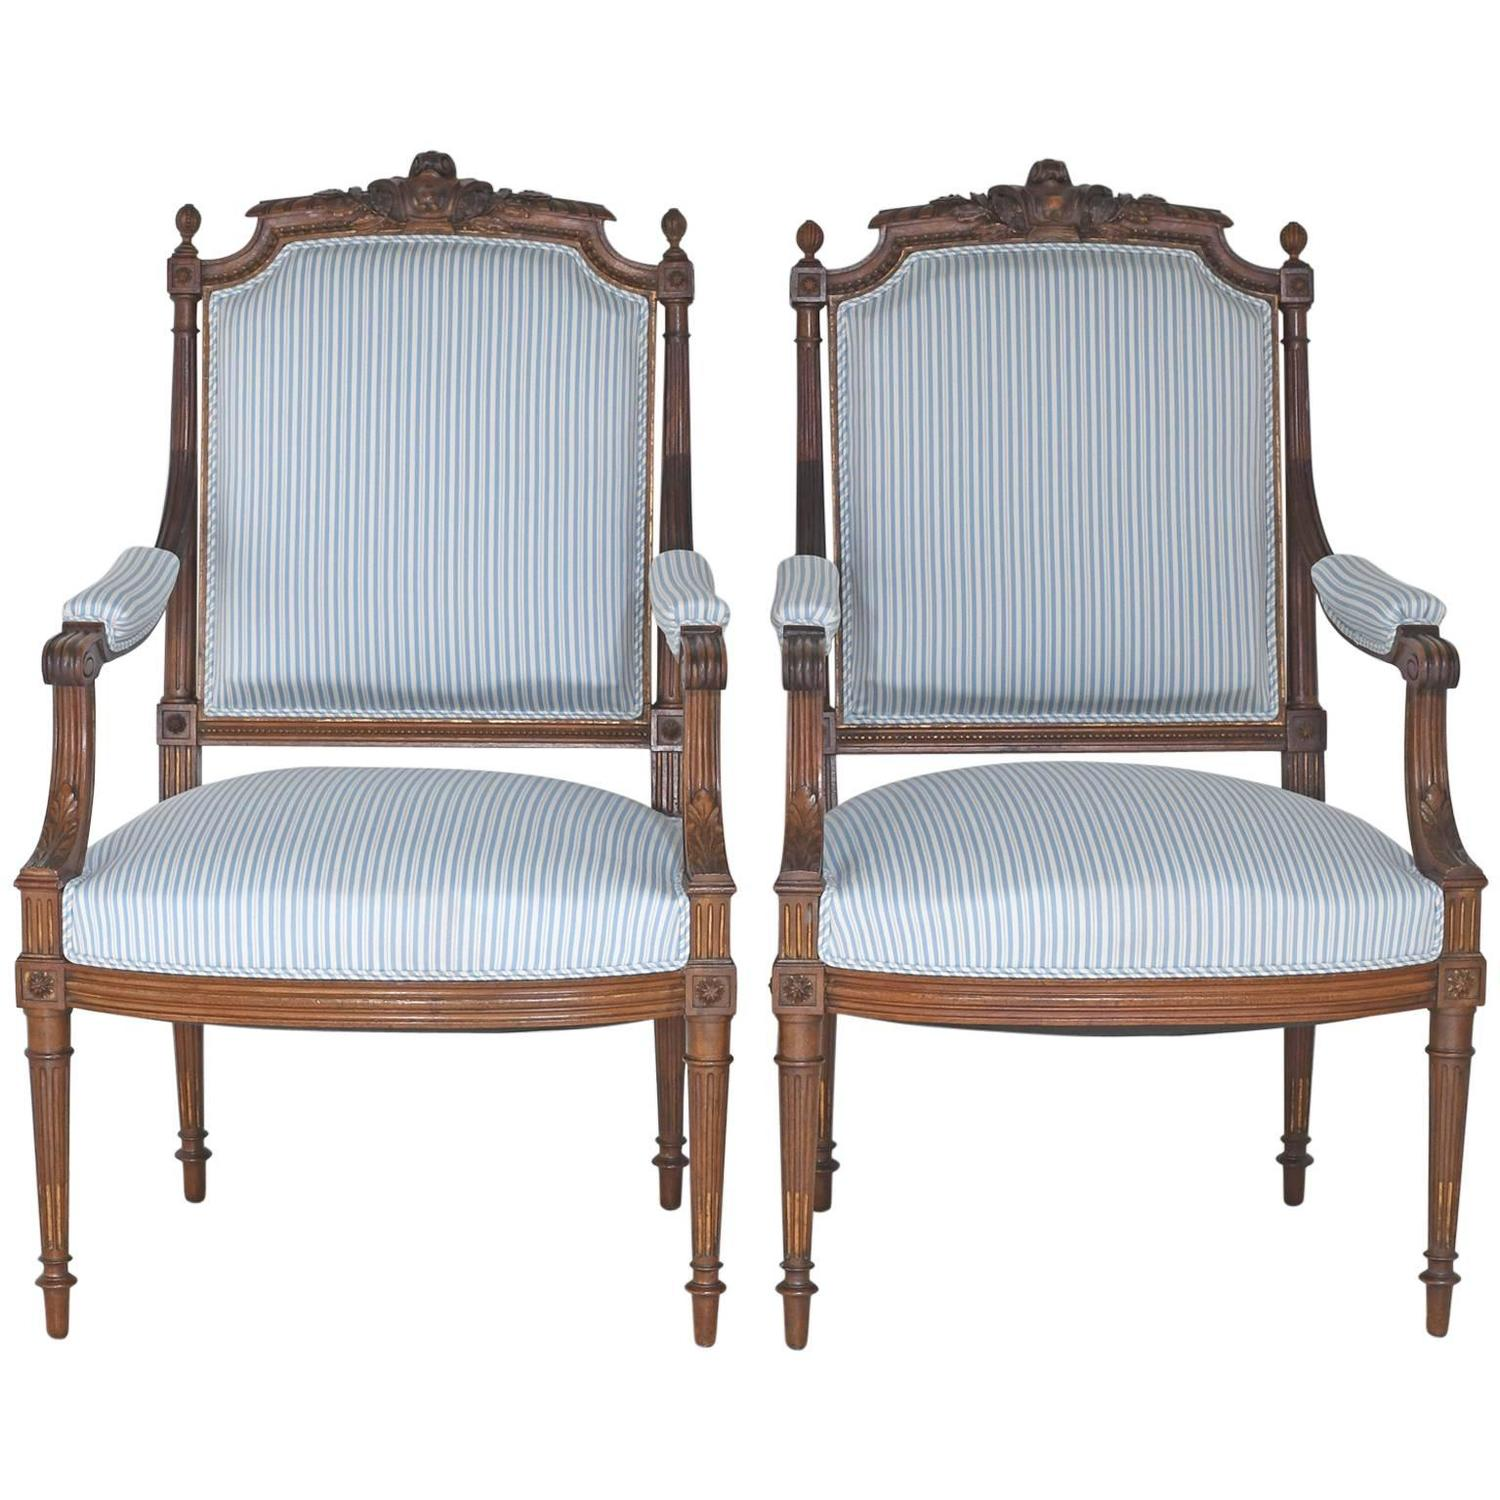 Pair of antique french upholstered louis xvi style armchairs in carved walnut at 1stdibs